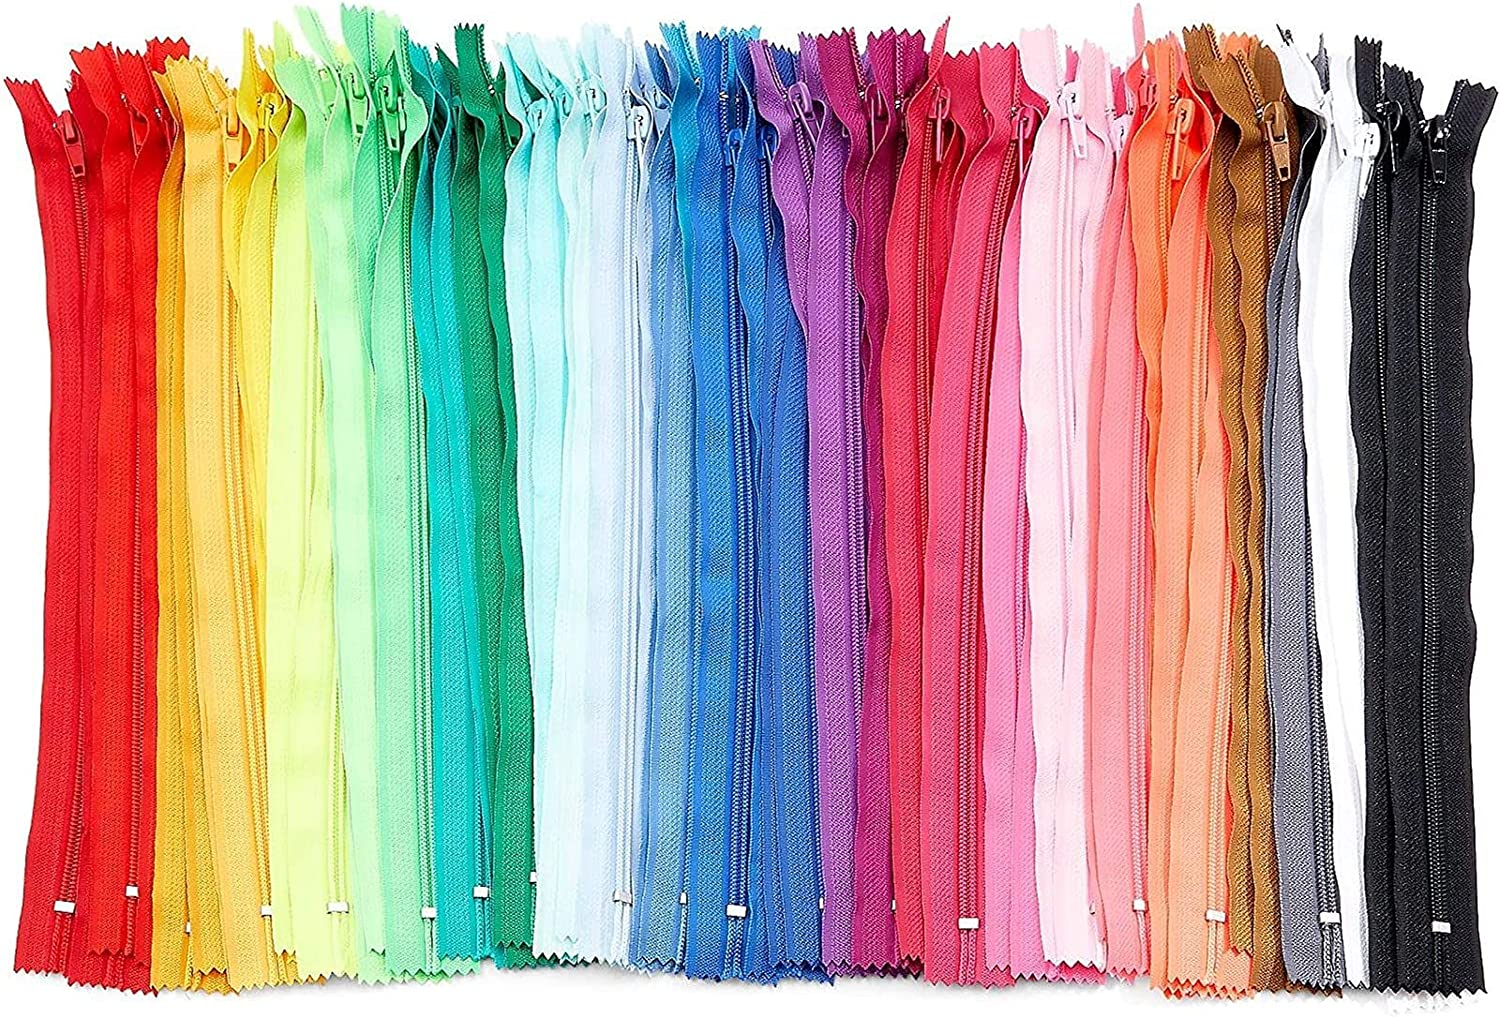 #5 Nylon Coil Zippers for Sewing, 30 Colors (12 Inches, 60 Pieces)